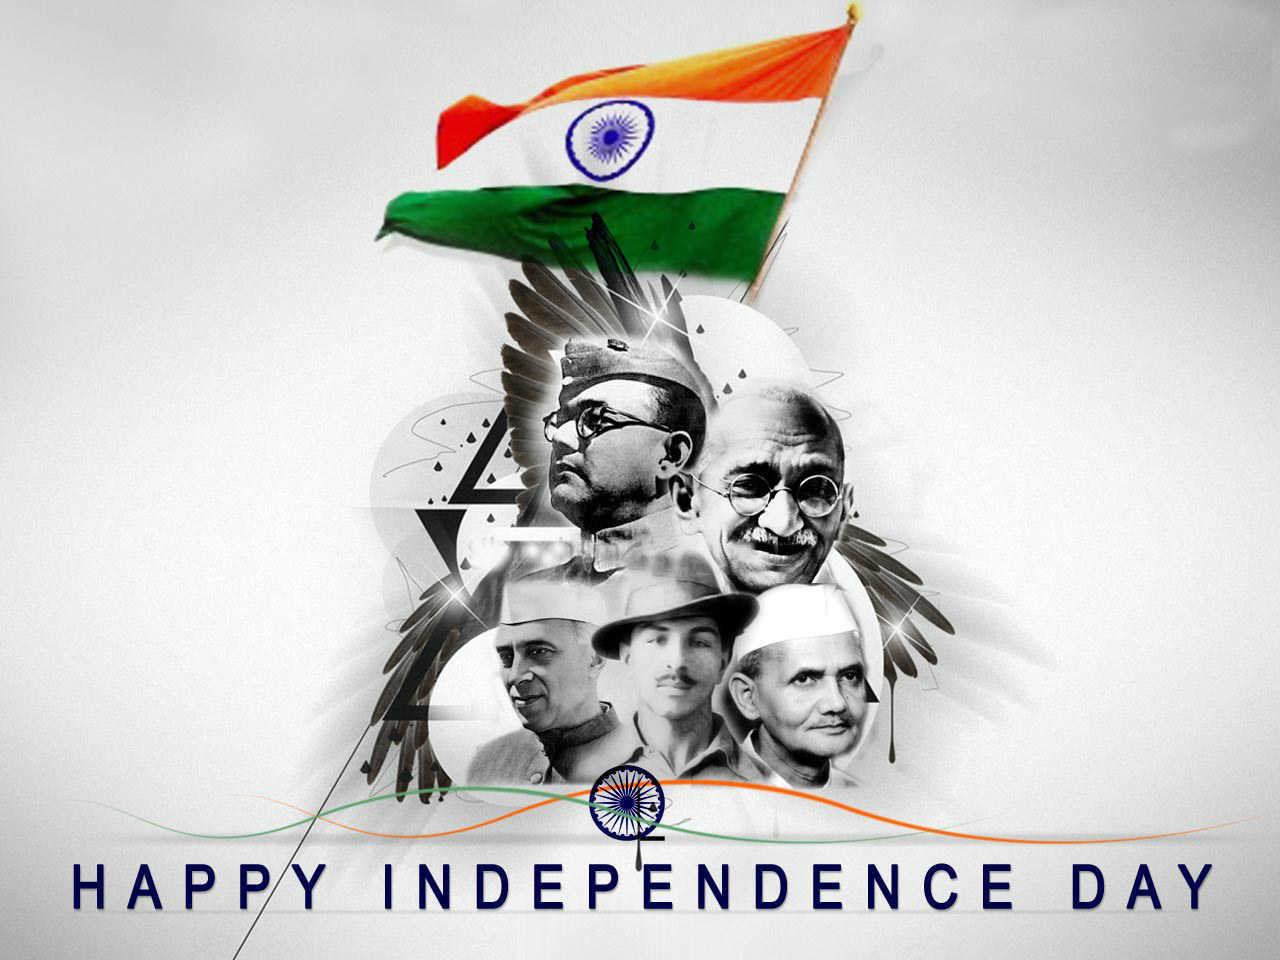 happy independence day clipart for facebook #2